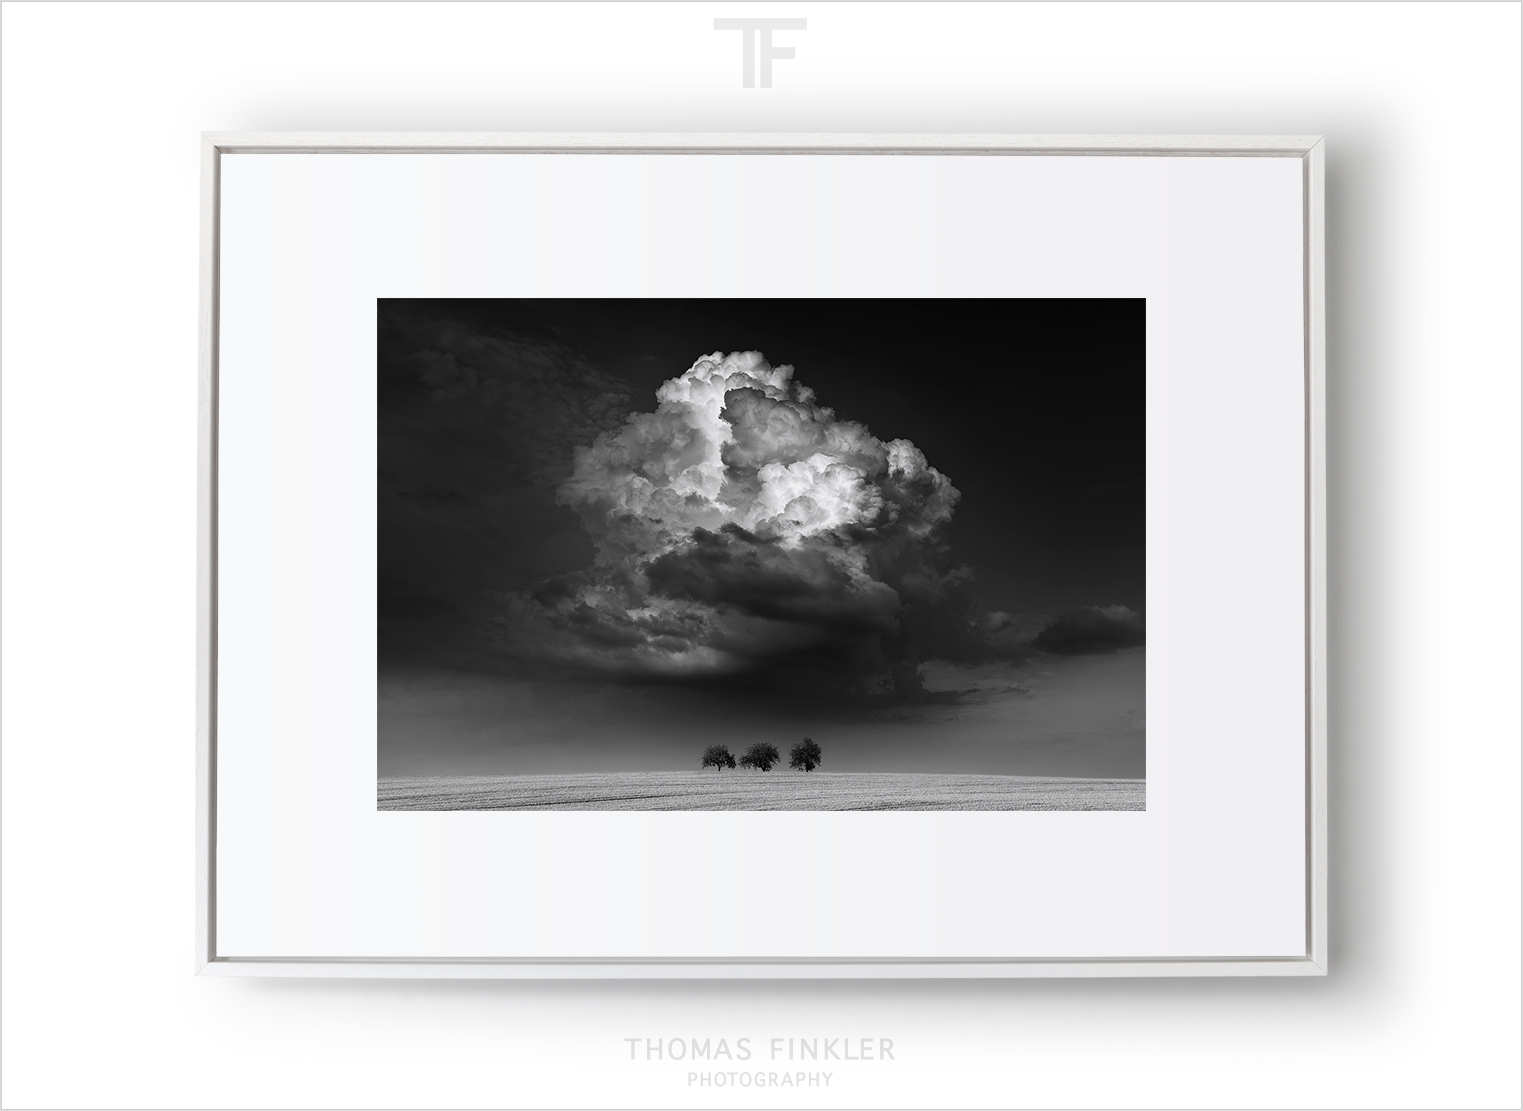 Fine art photography black and white landscape cloudscape minimal dramatic sky trees limited edition framed prints for sale jpg